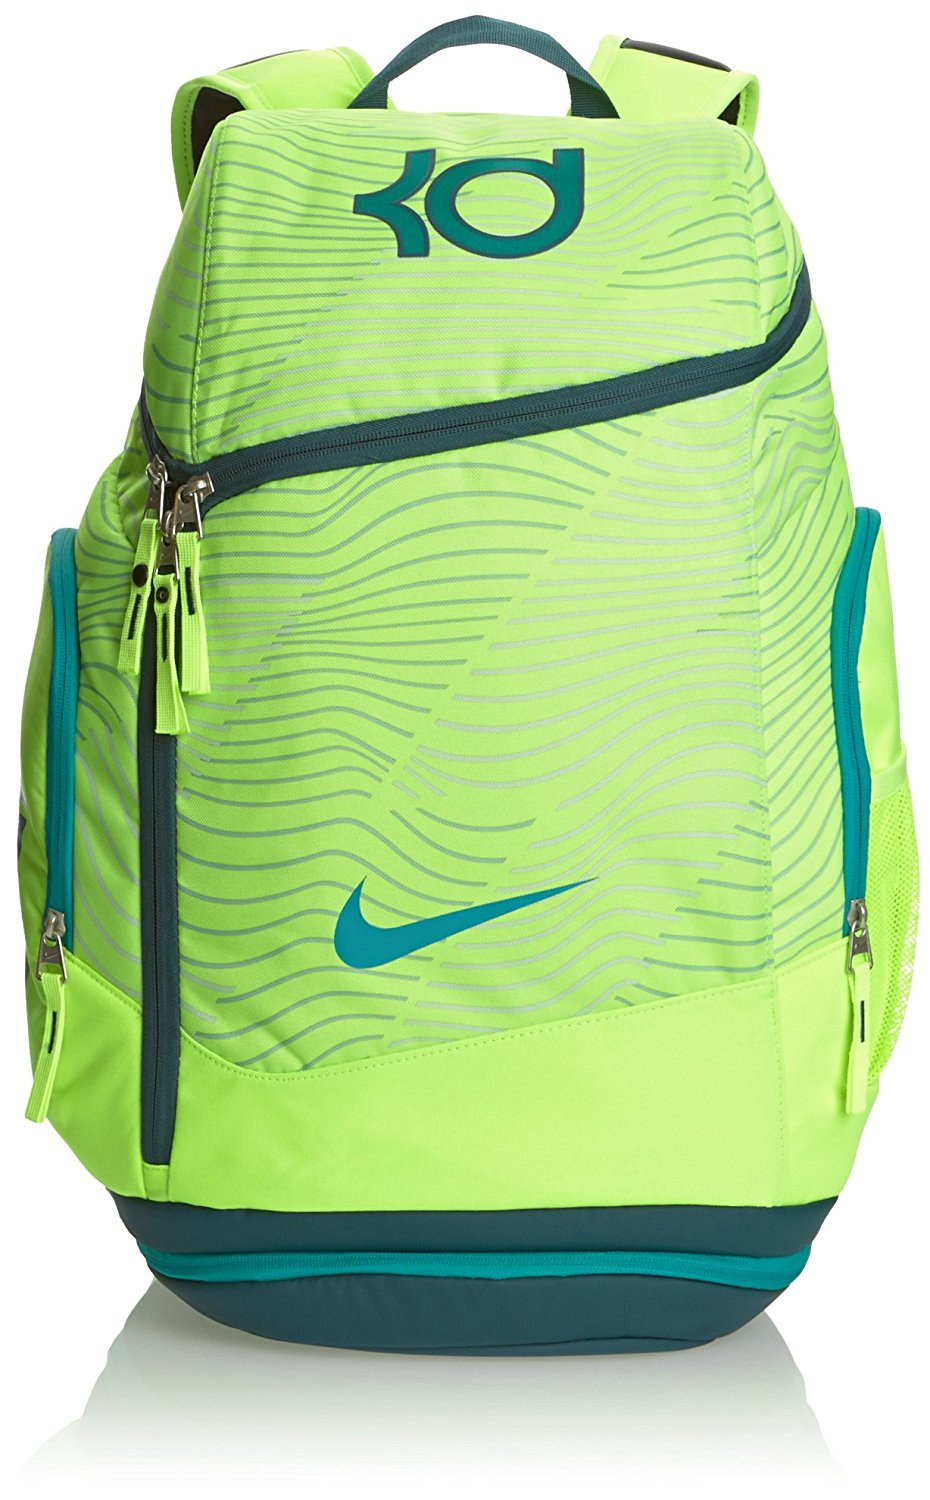 c00a696a9e01 Buy Nike Unisex KD Max Air Basketball Backpack BA4853 in Cheap Price ...